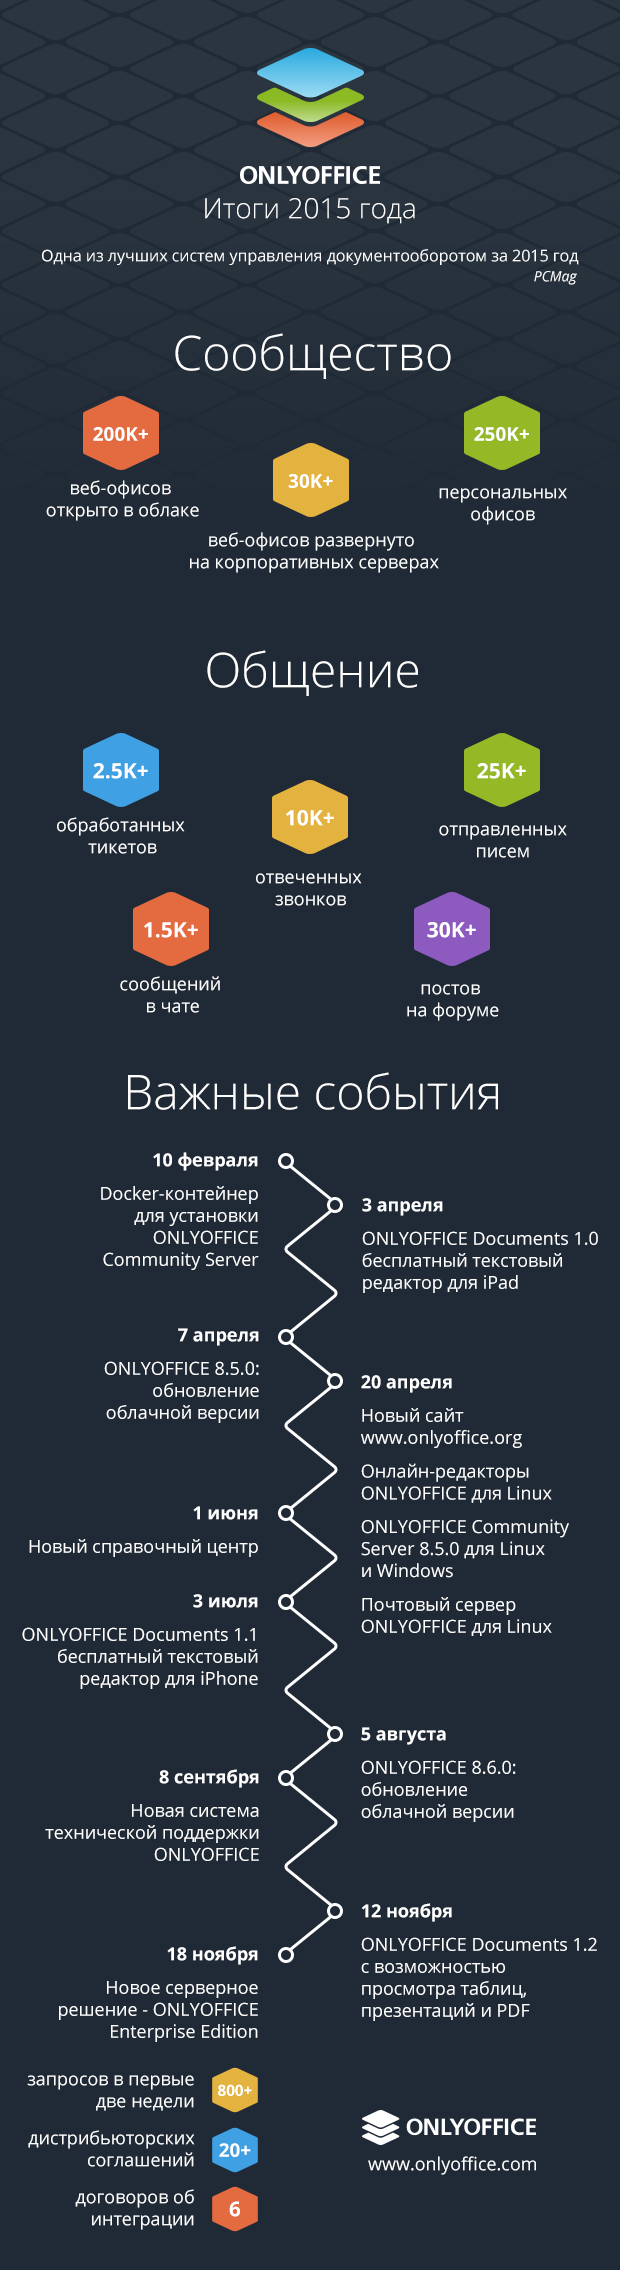 onlyoffice-2015-infographics-ru